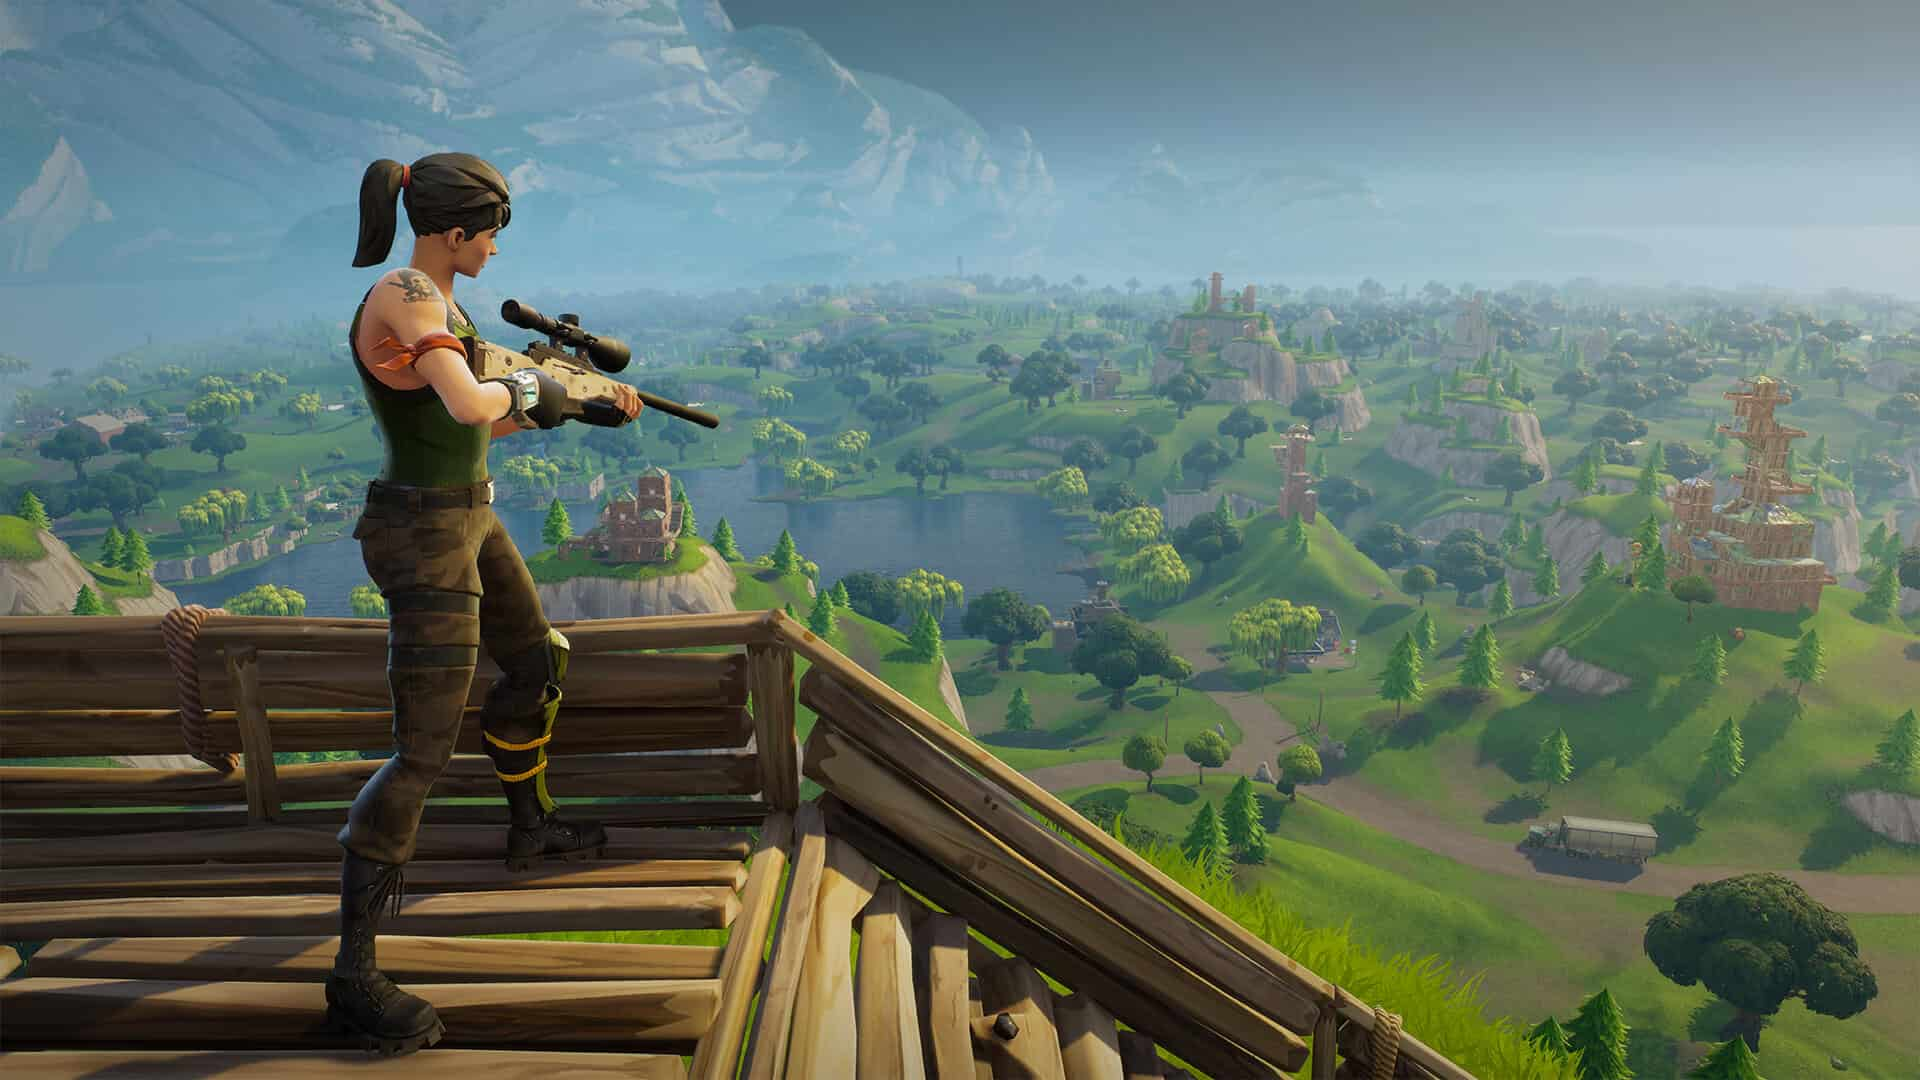 Fortnite 3.6 Update Patch Notes Detail Clinger Item, Port-a-Fort Improvements & More